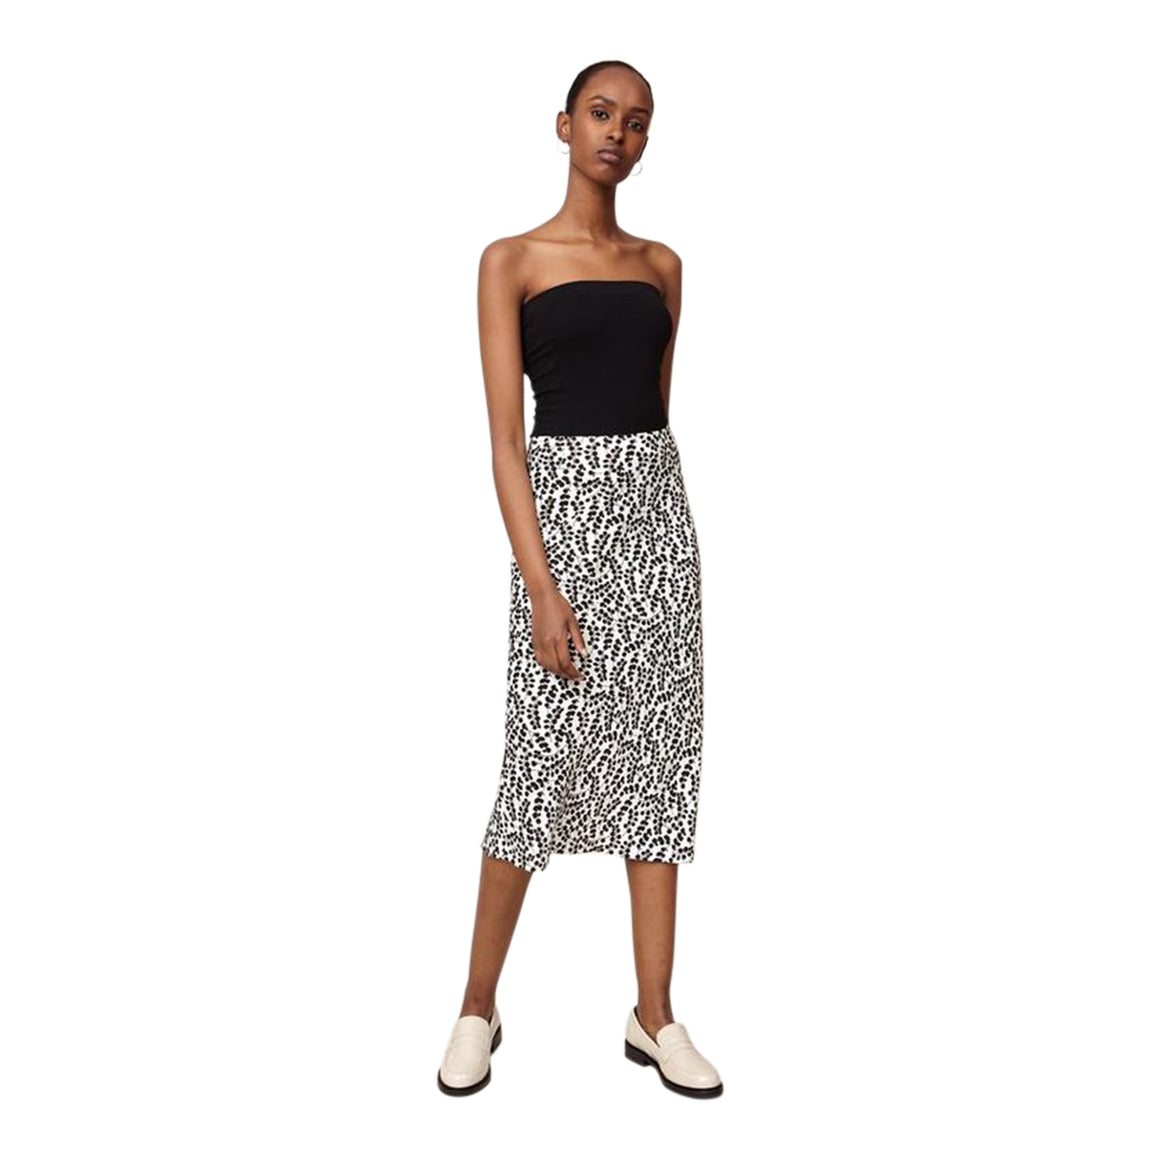 Eucalyptus Print Skirt for Women in Black & White